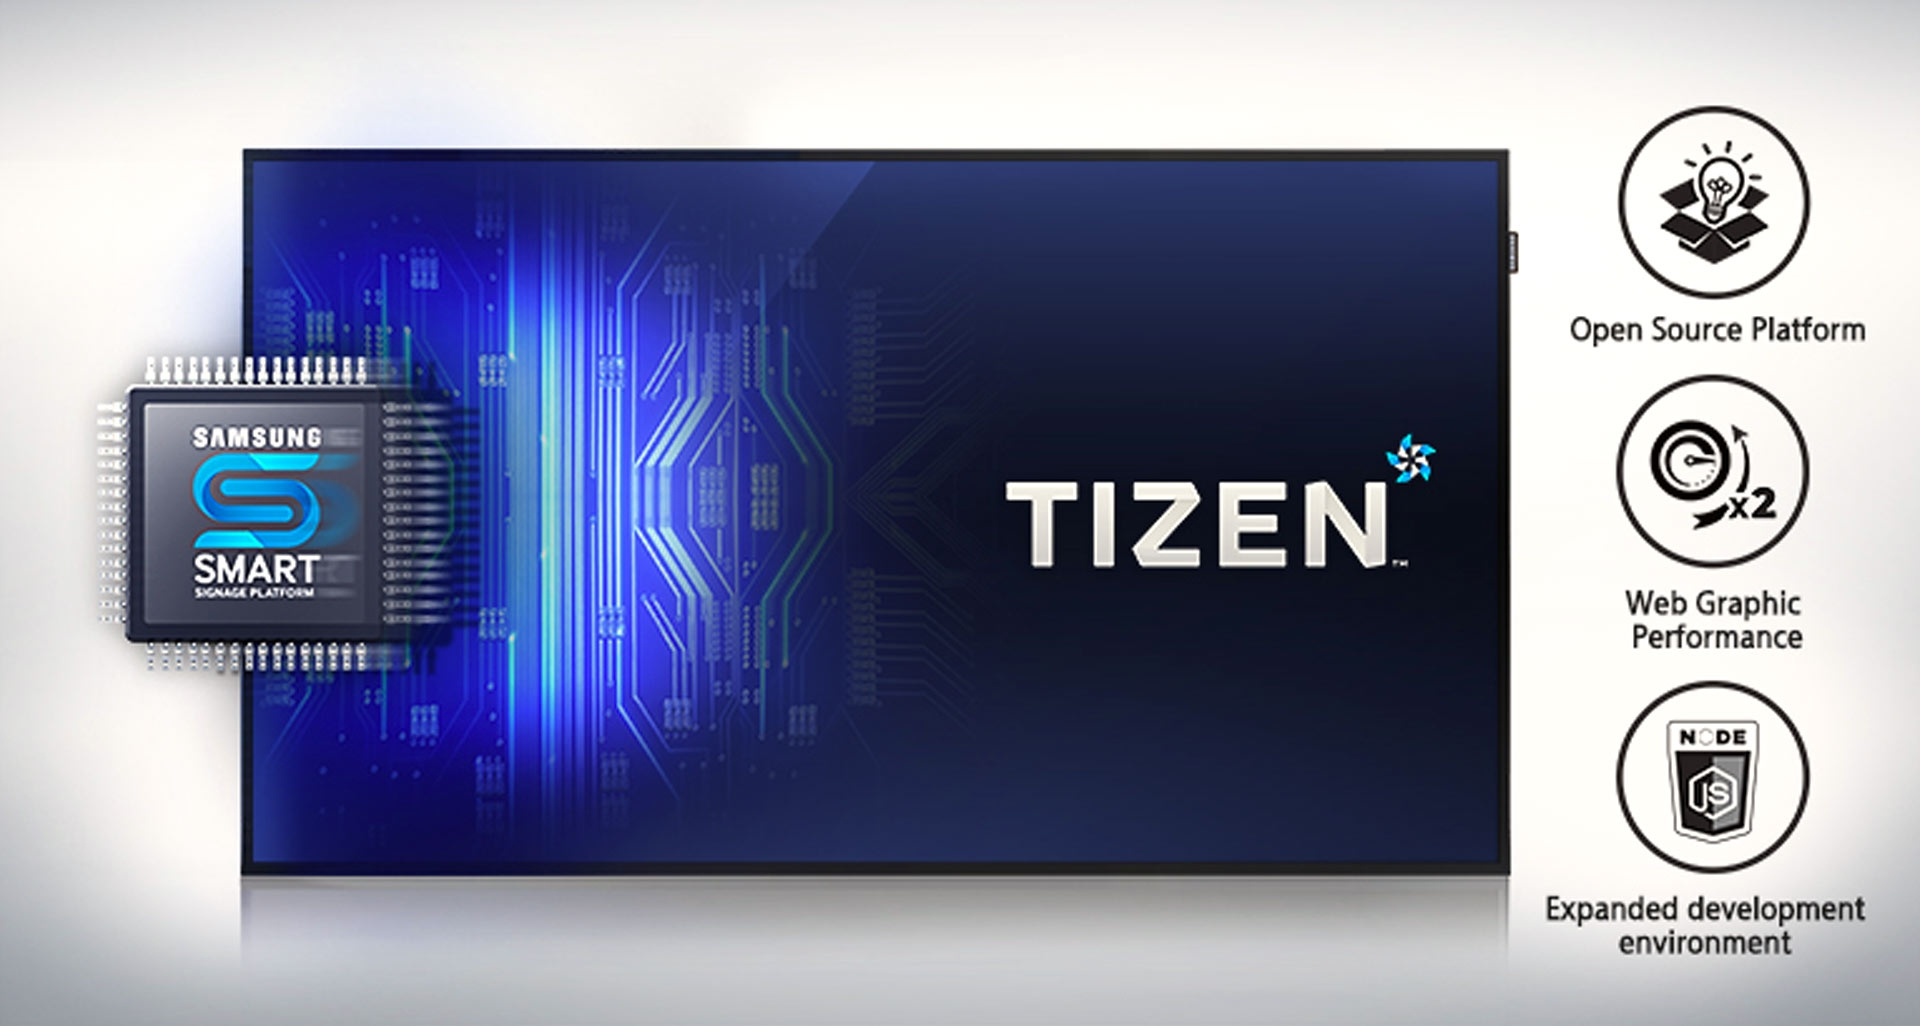 samsung 1 the all new embedded media player powered by tizen - نمایشگر اطلاع رسان سامسونگ 24/7 تایزن 49 اینچ Samsung Display 24/7 PM49F